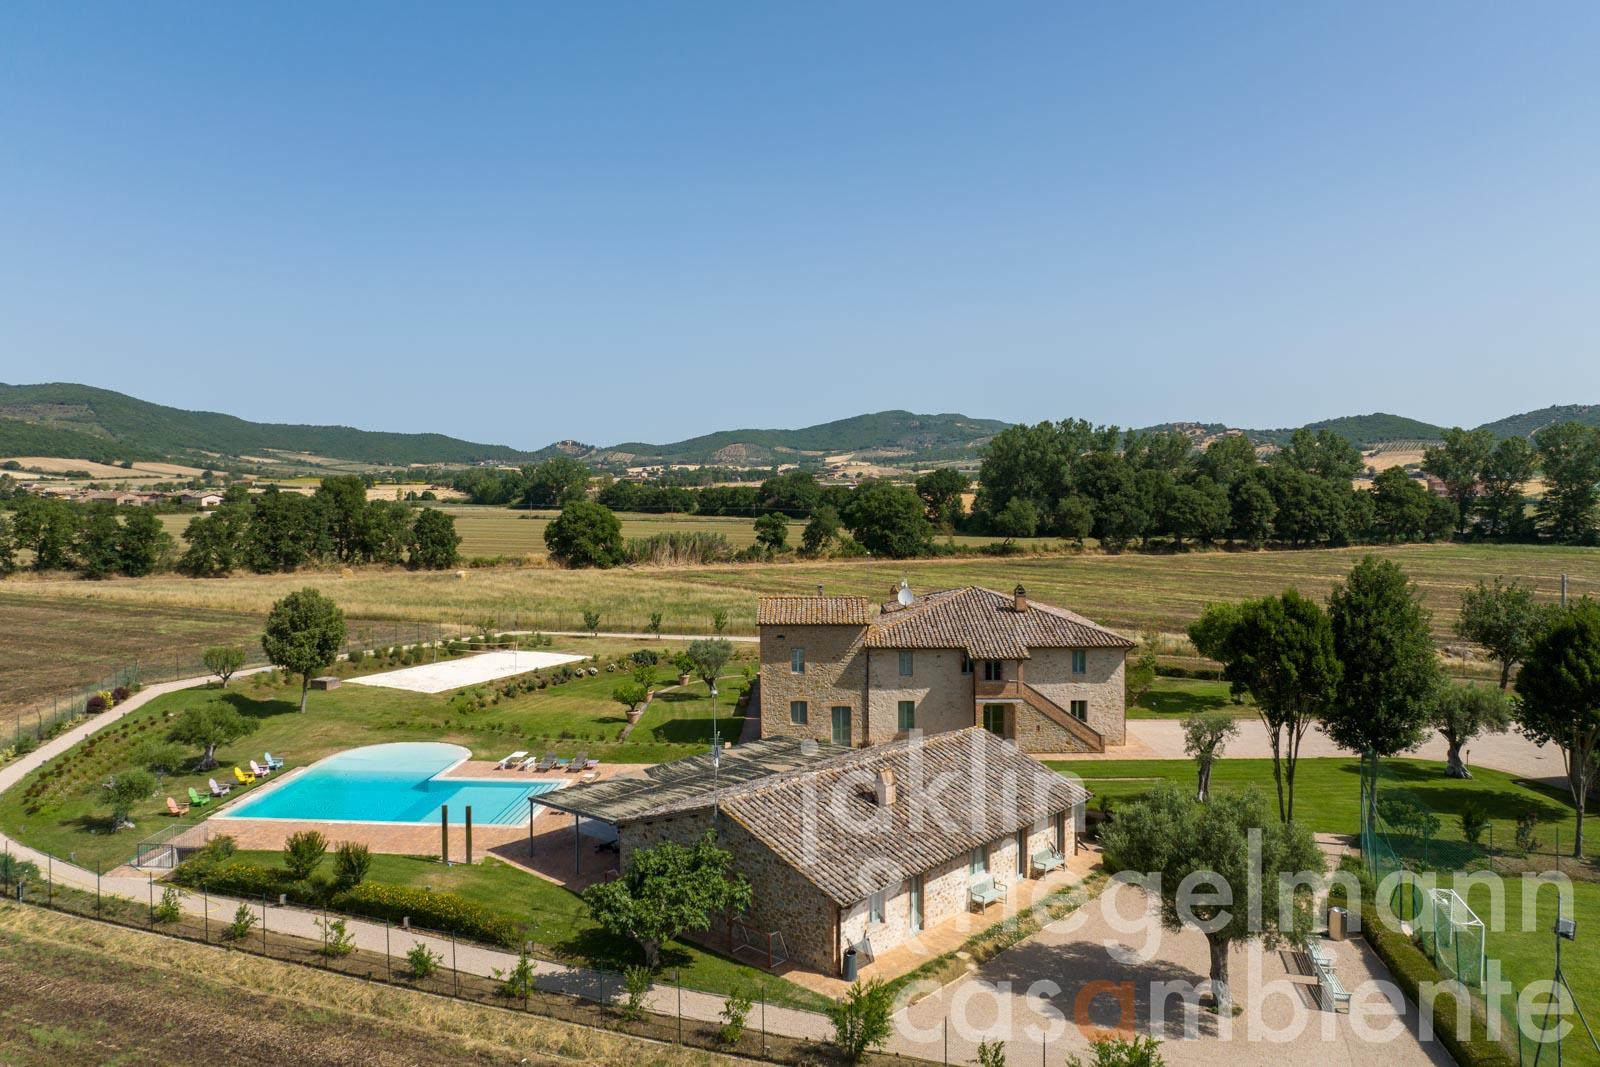 Luxury property with every imaginable comfort near Lake Trasimeno in Umbria